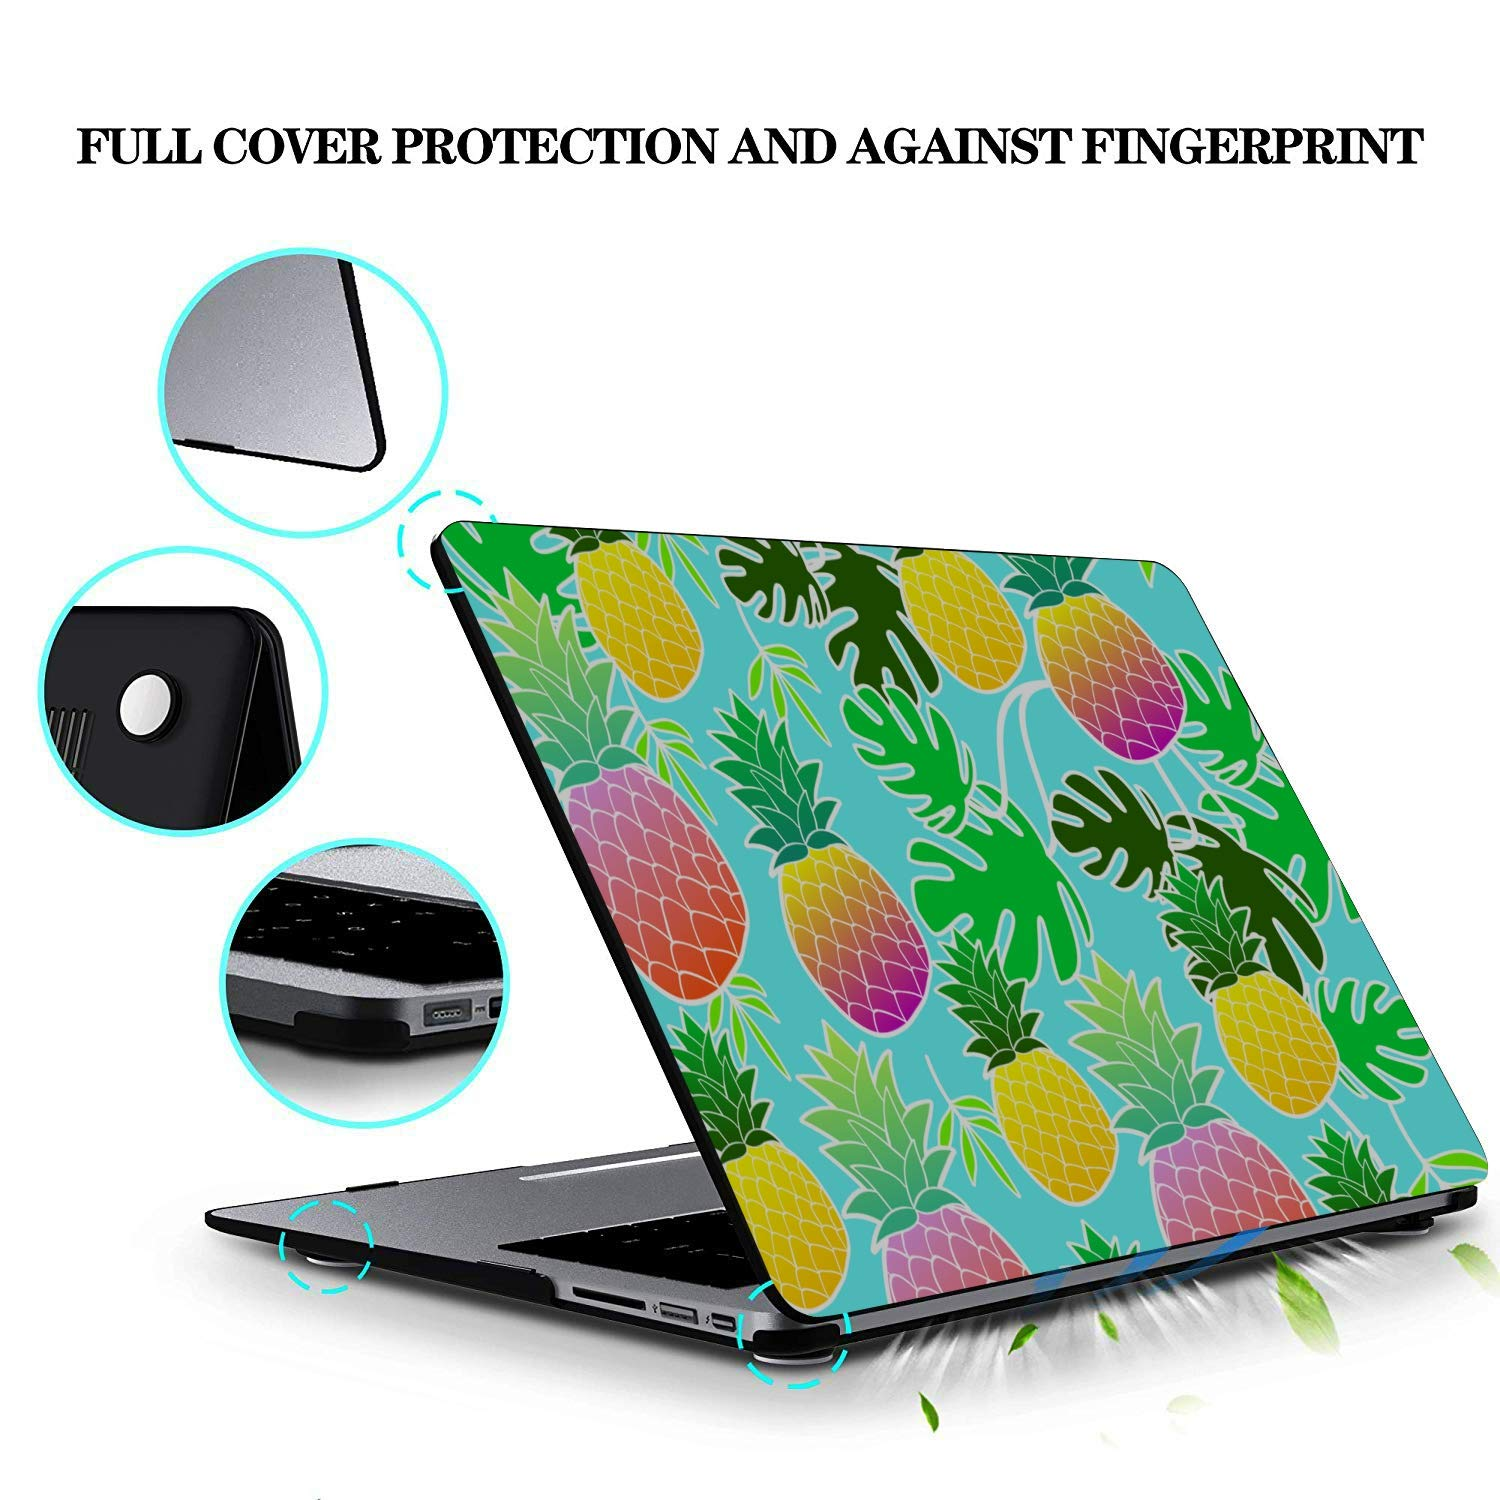 MacBook Pro Accessories Summer Sweet Cute Fruit Pineapple Plastic Hard Shell Compatible Mac Air 11 Pro 13 15 Mac Book Air Cover Protection for MacBook 2016-2019 Version